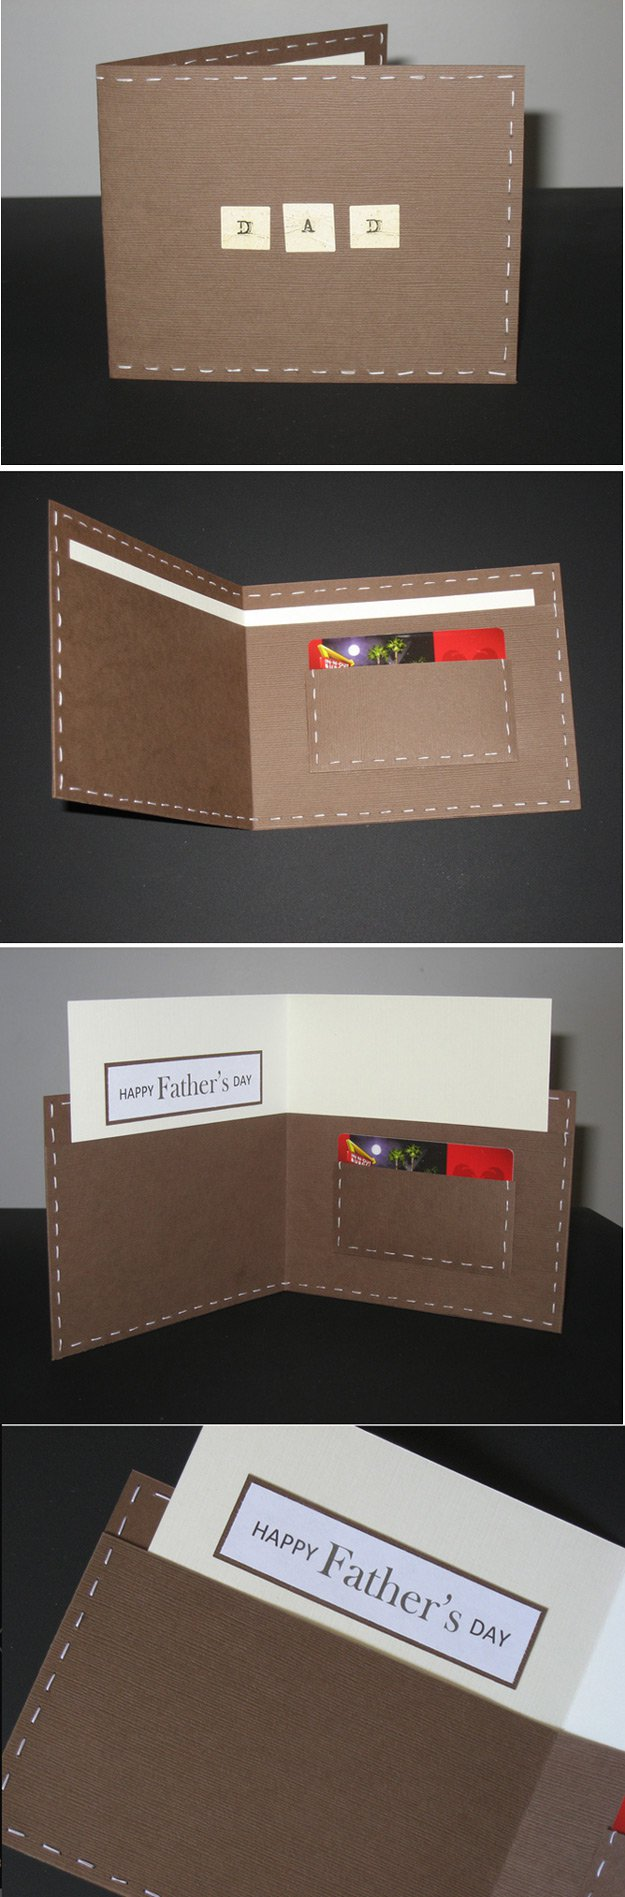 Cool DIY Fathers Day Card Ideas | http://www.foliver.com/diy/21-diy-ideas-for-fathers-day-cards/